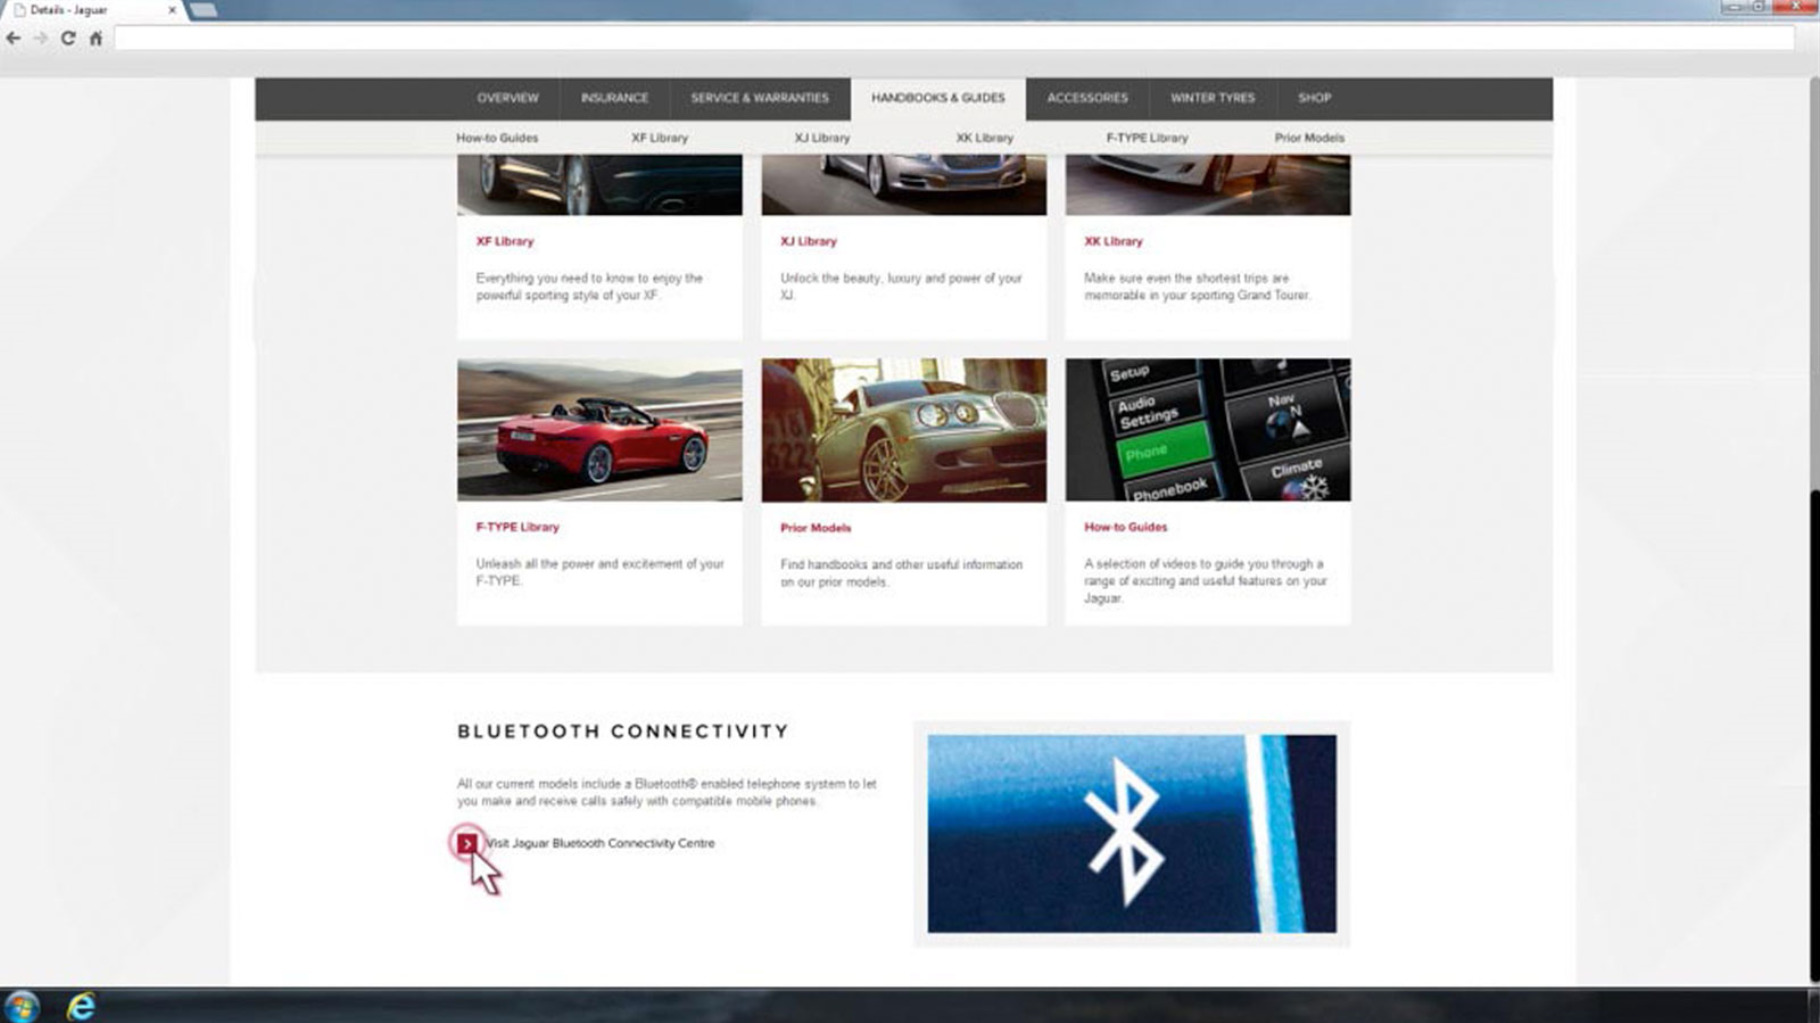 Jaguar XF Bluetooth connectivity Website